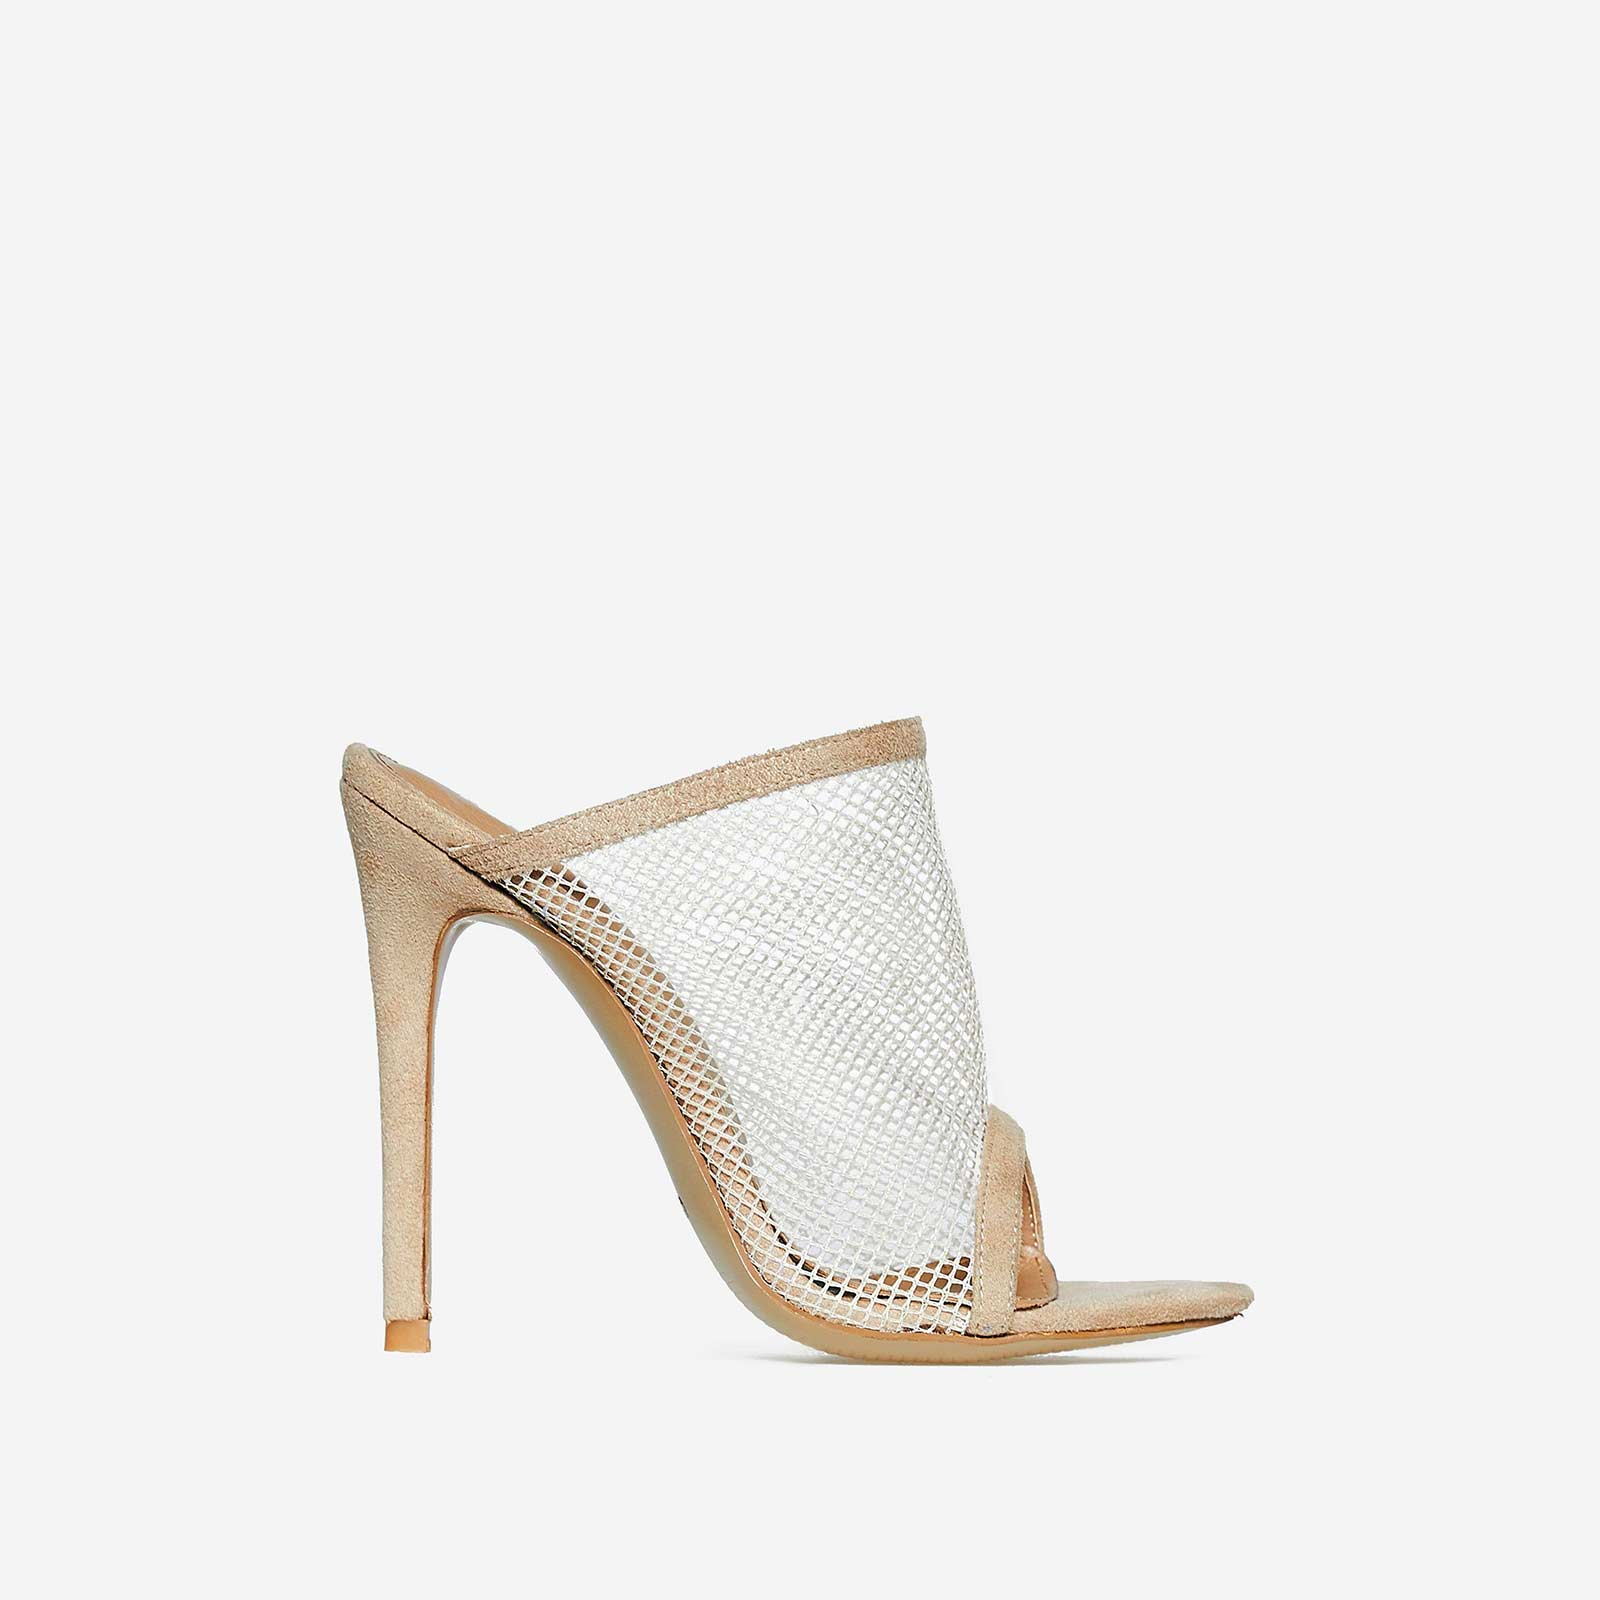 Cardi Fishnet Peep Toe Mule In Nude Faux Suede